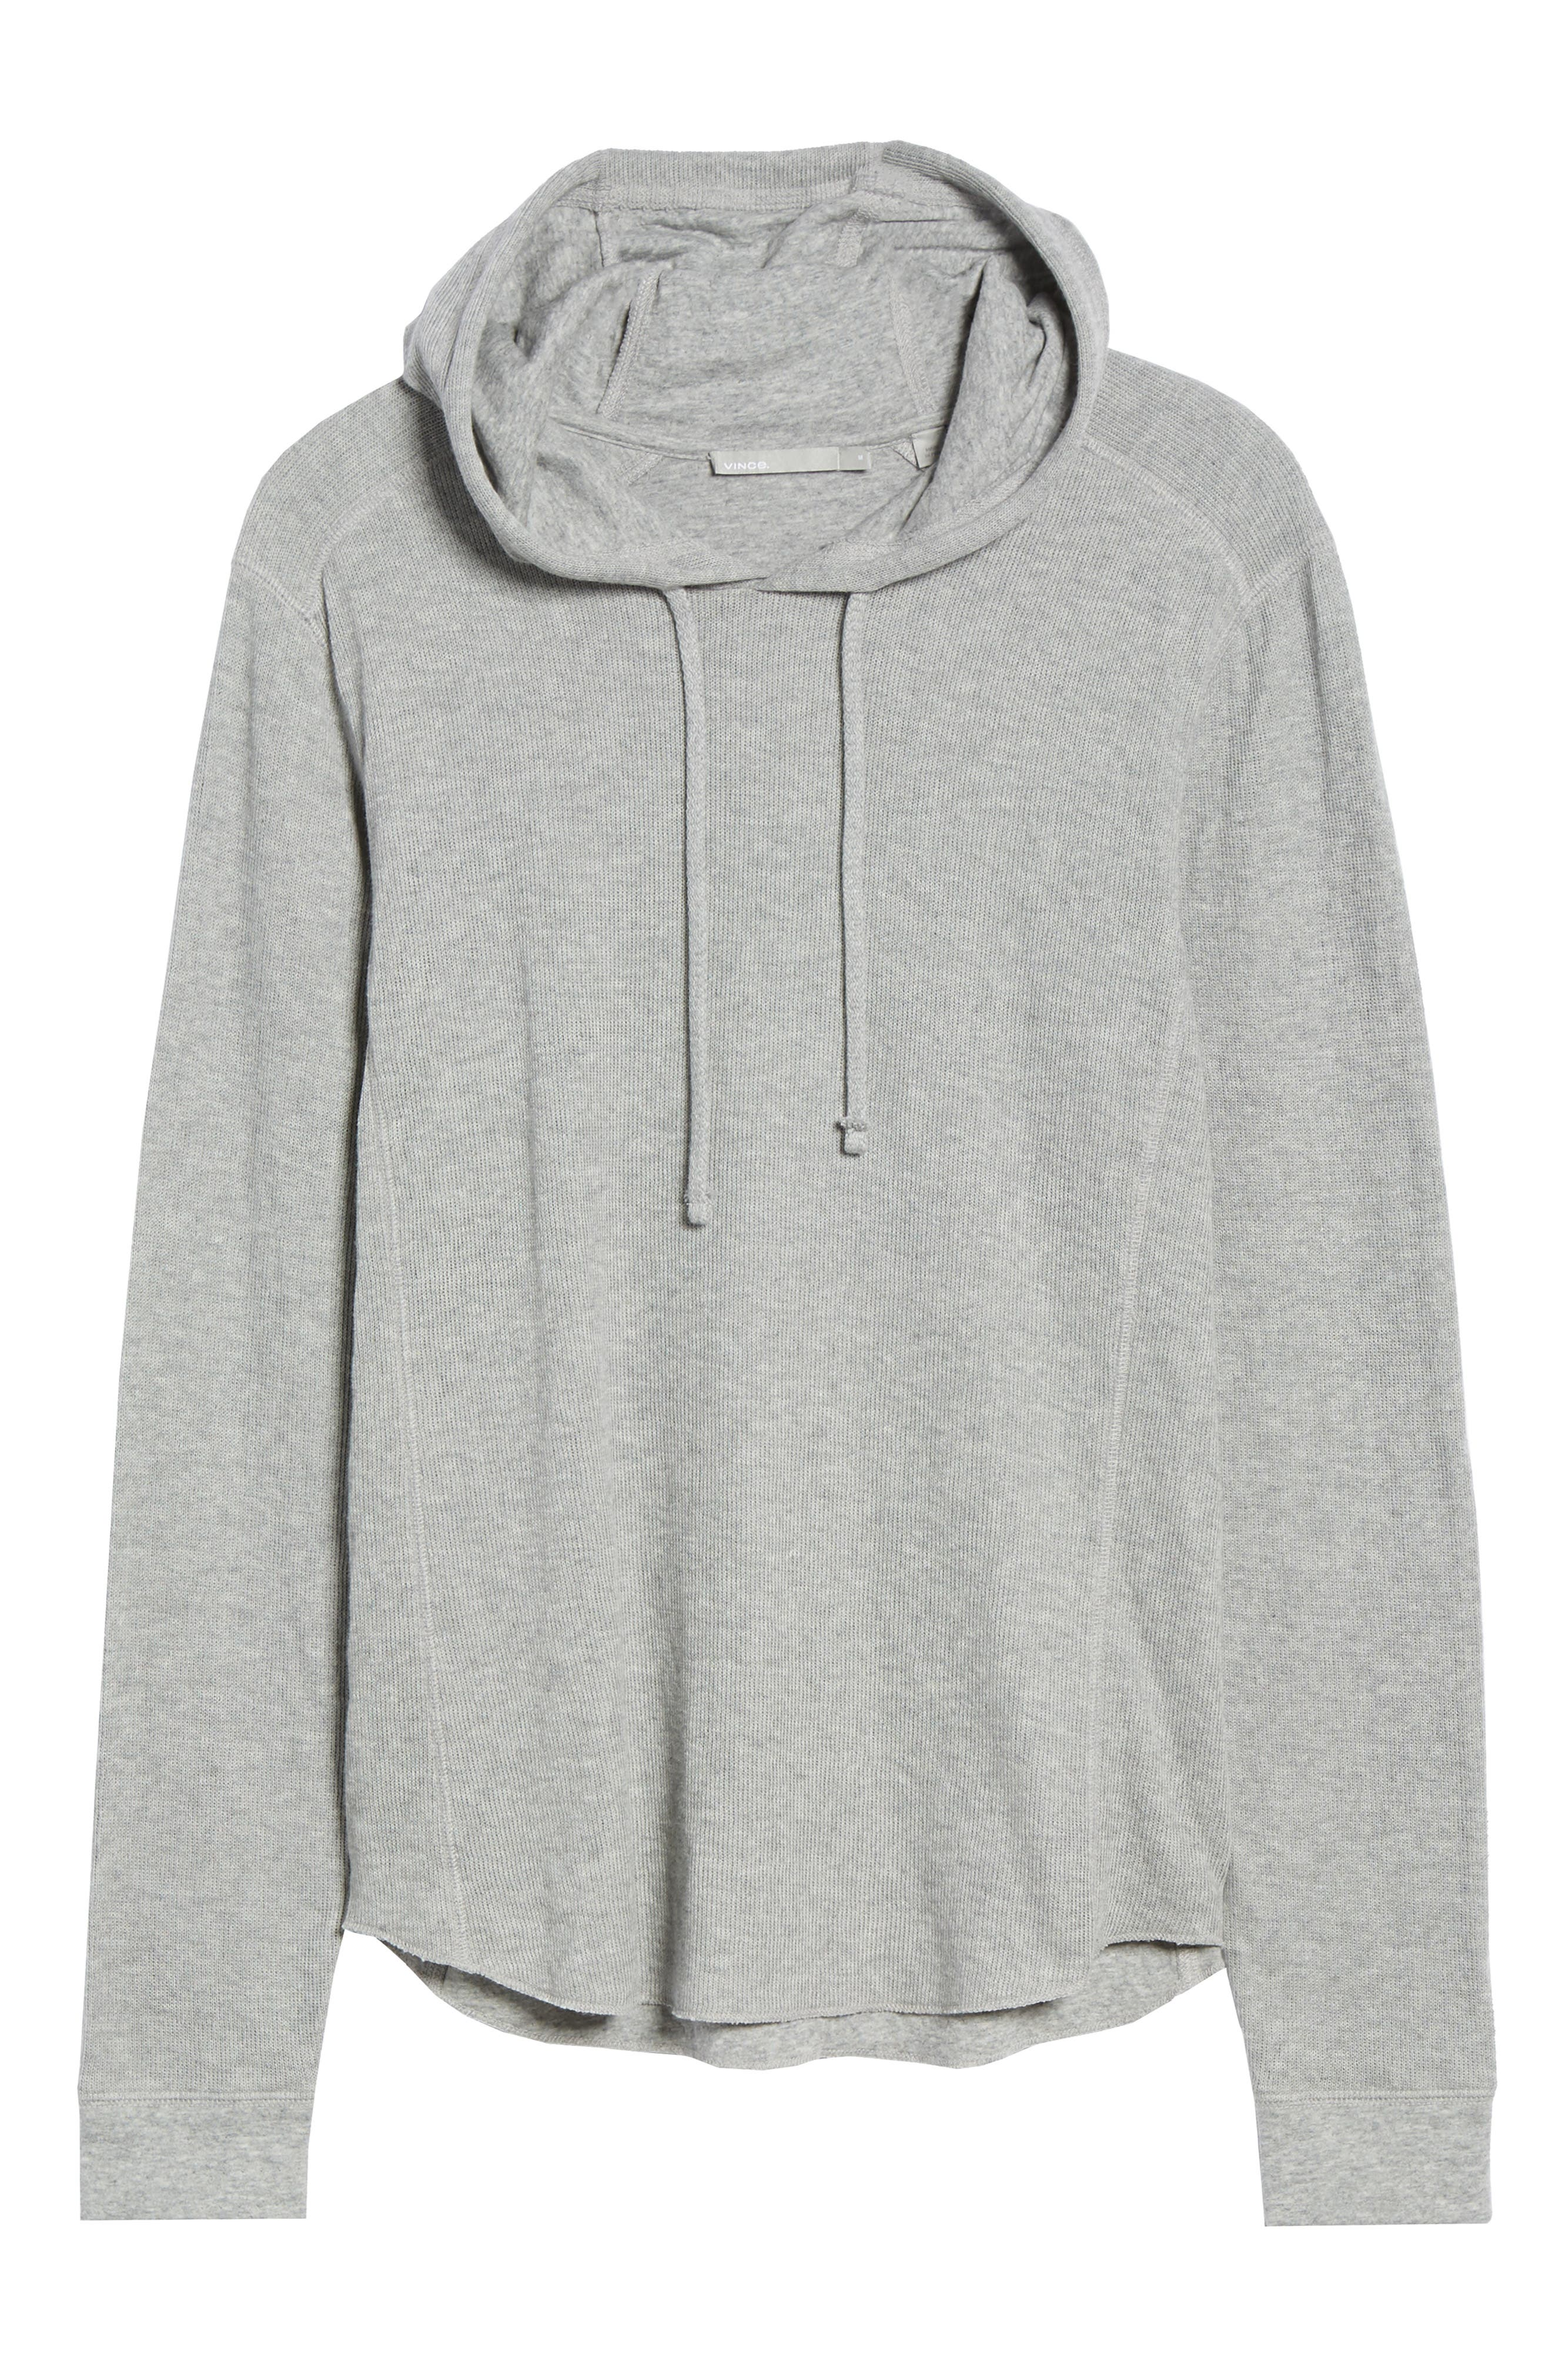 Double Knit Hoodie,                             Alternate thumbnail 6, color,                             H STEEL